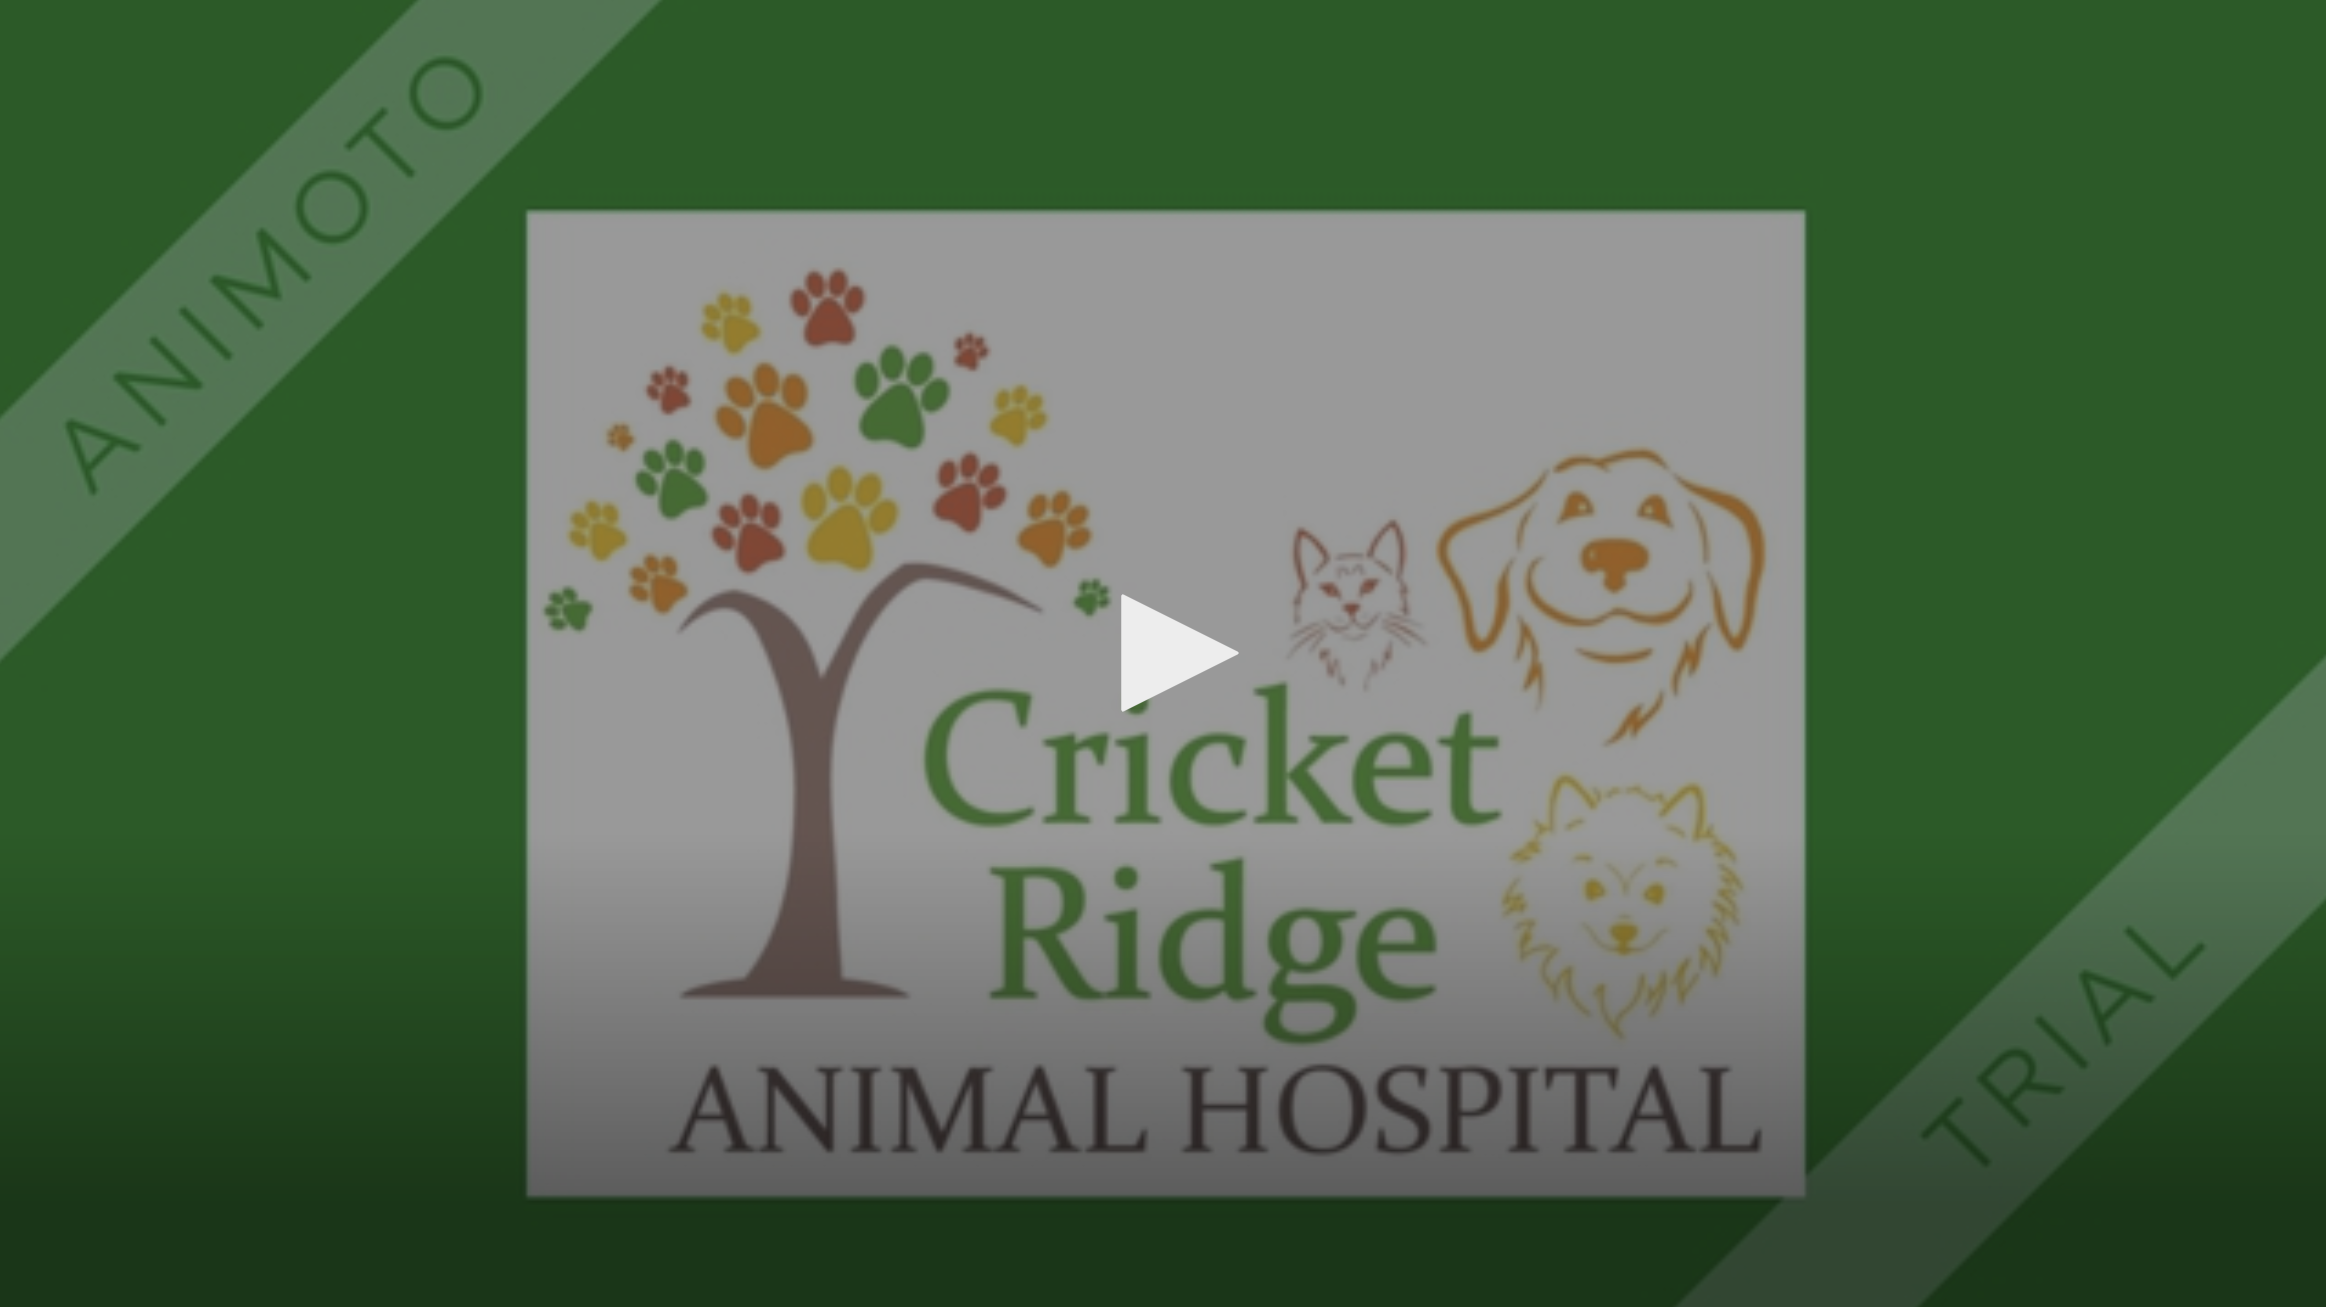 Get to know Cricket Ridge Animal Hospital